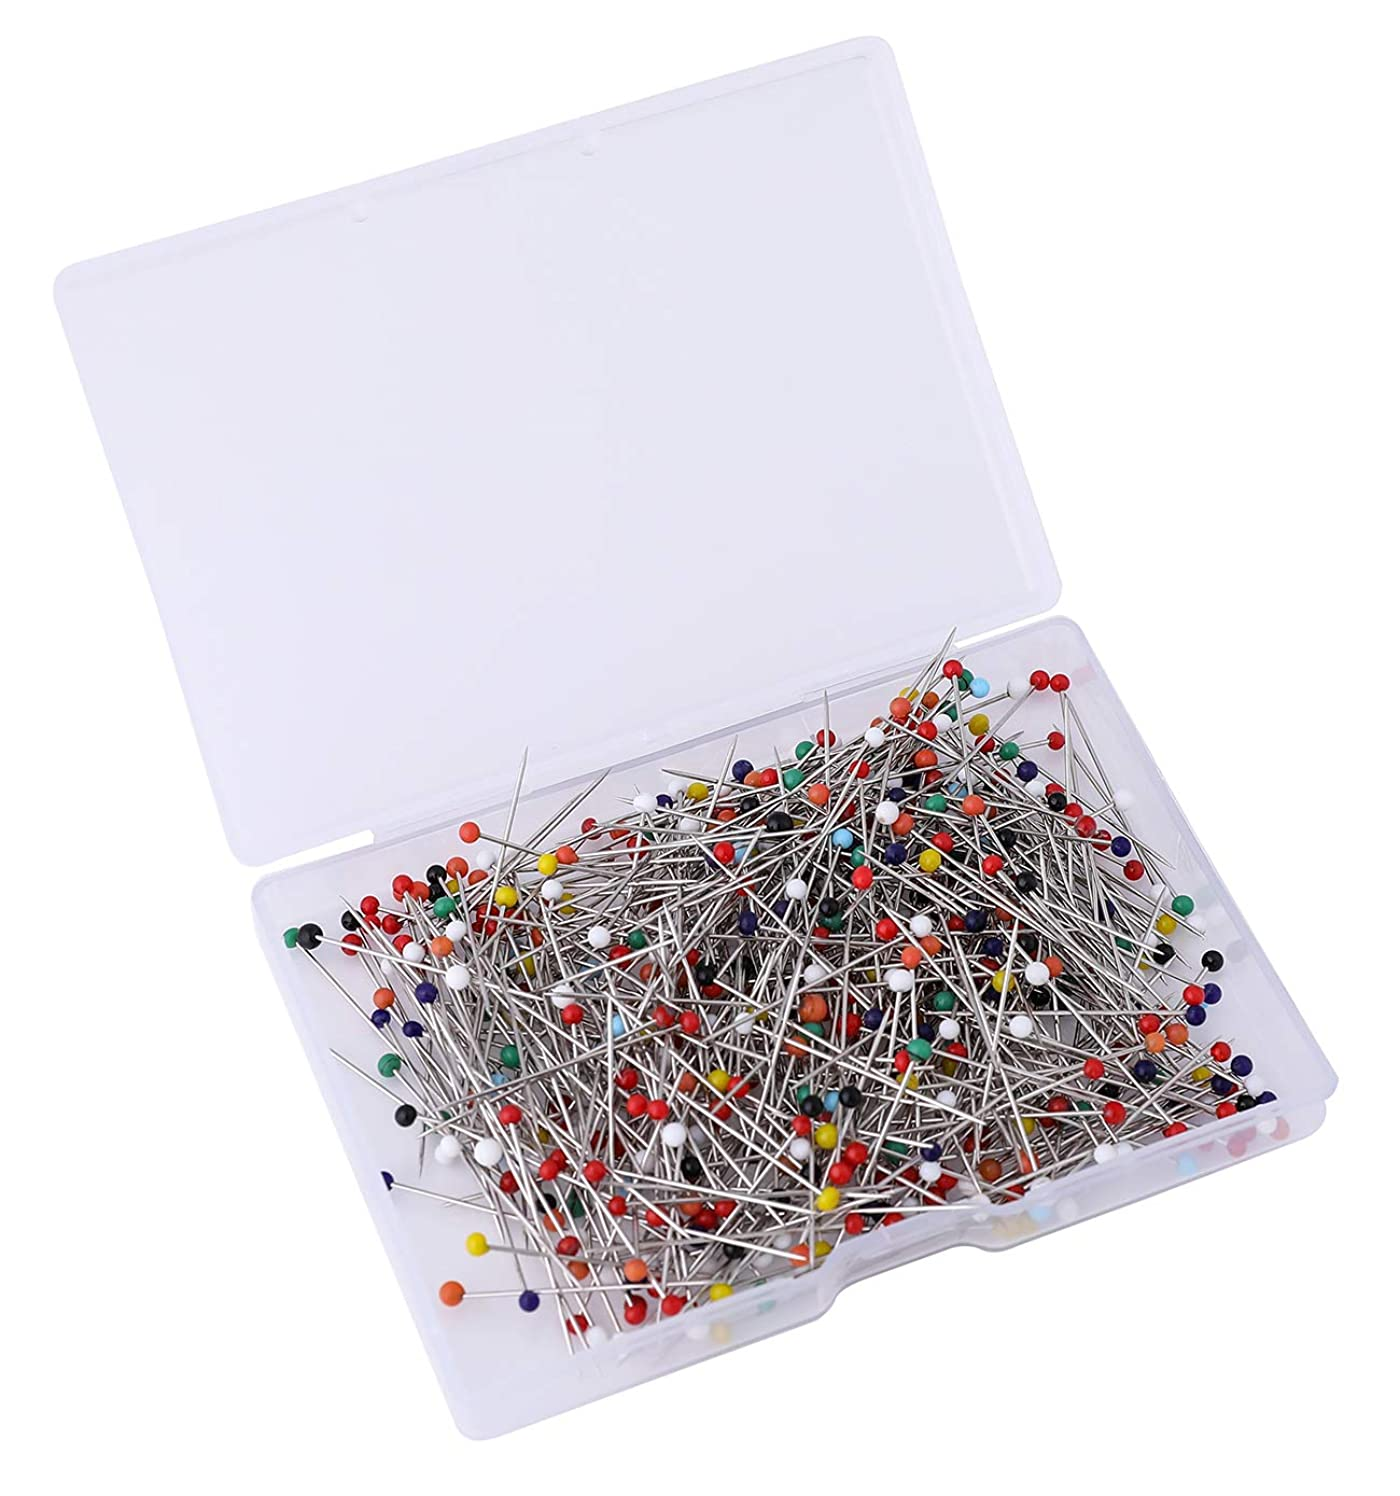 Y&YUAN 1-1/4 Inch Color Sewing Pins Ball Glass Head Straight Quilting Pins (500 Pieces)